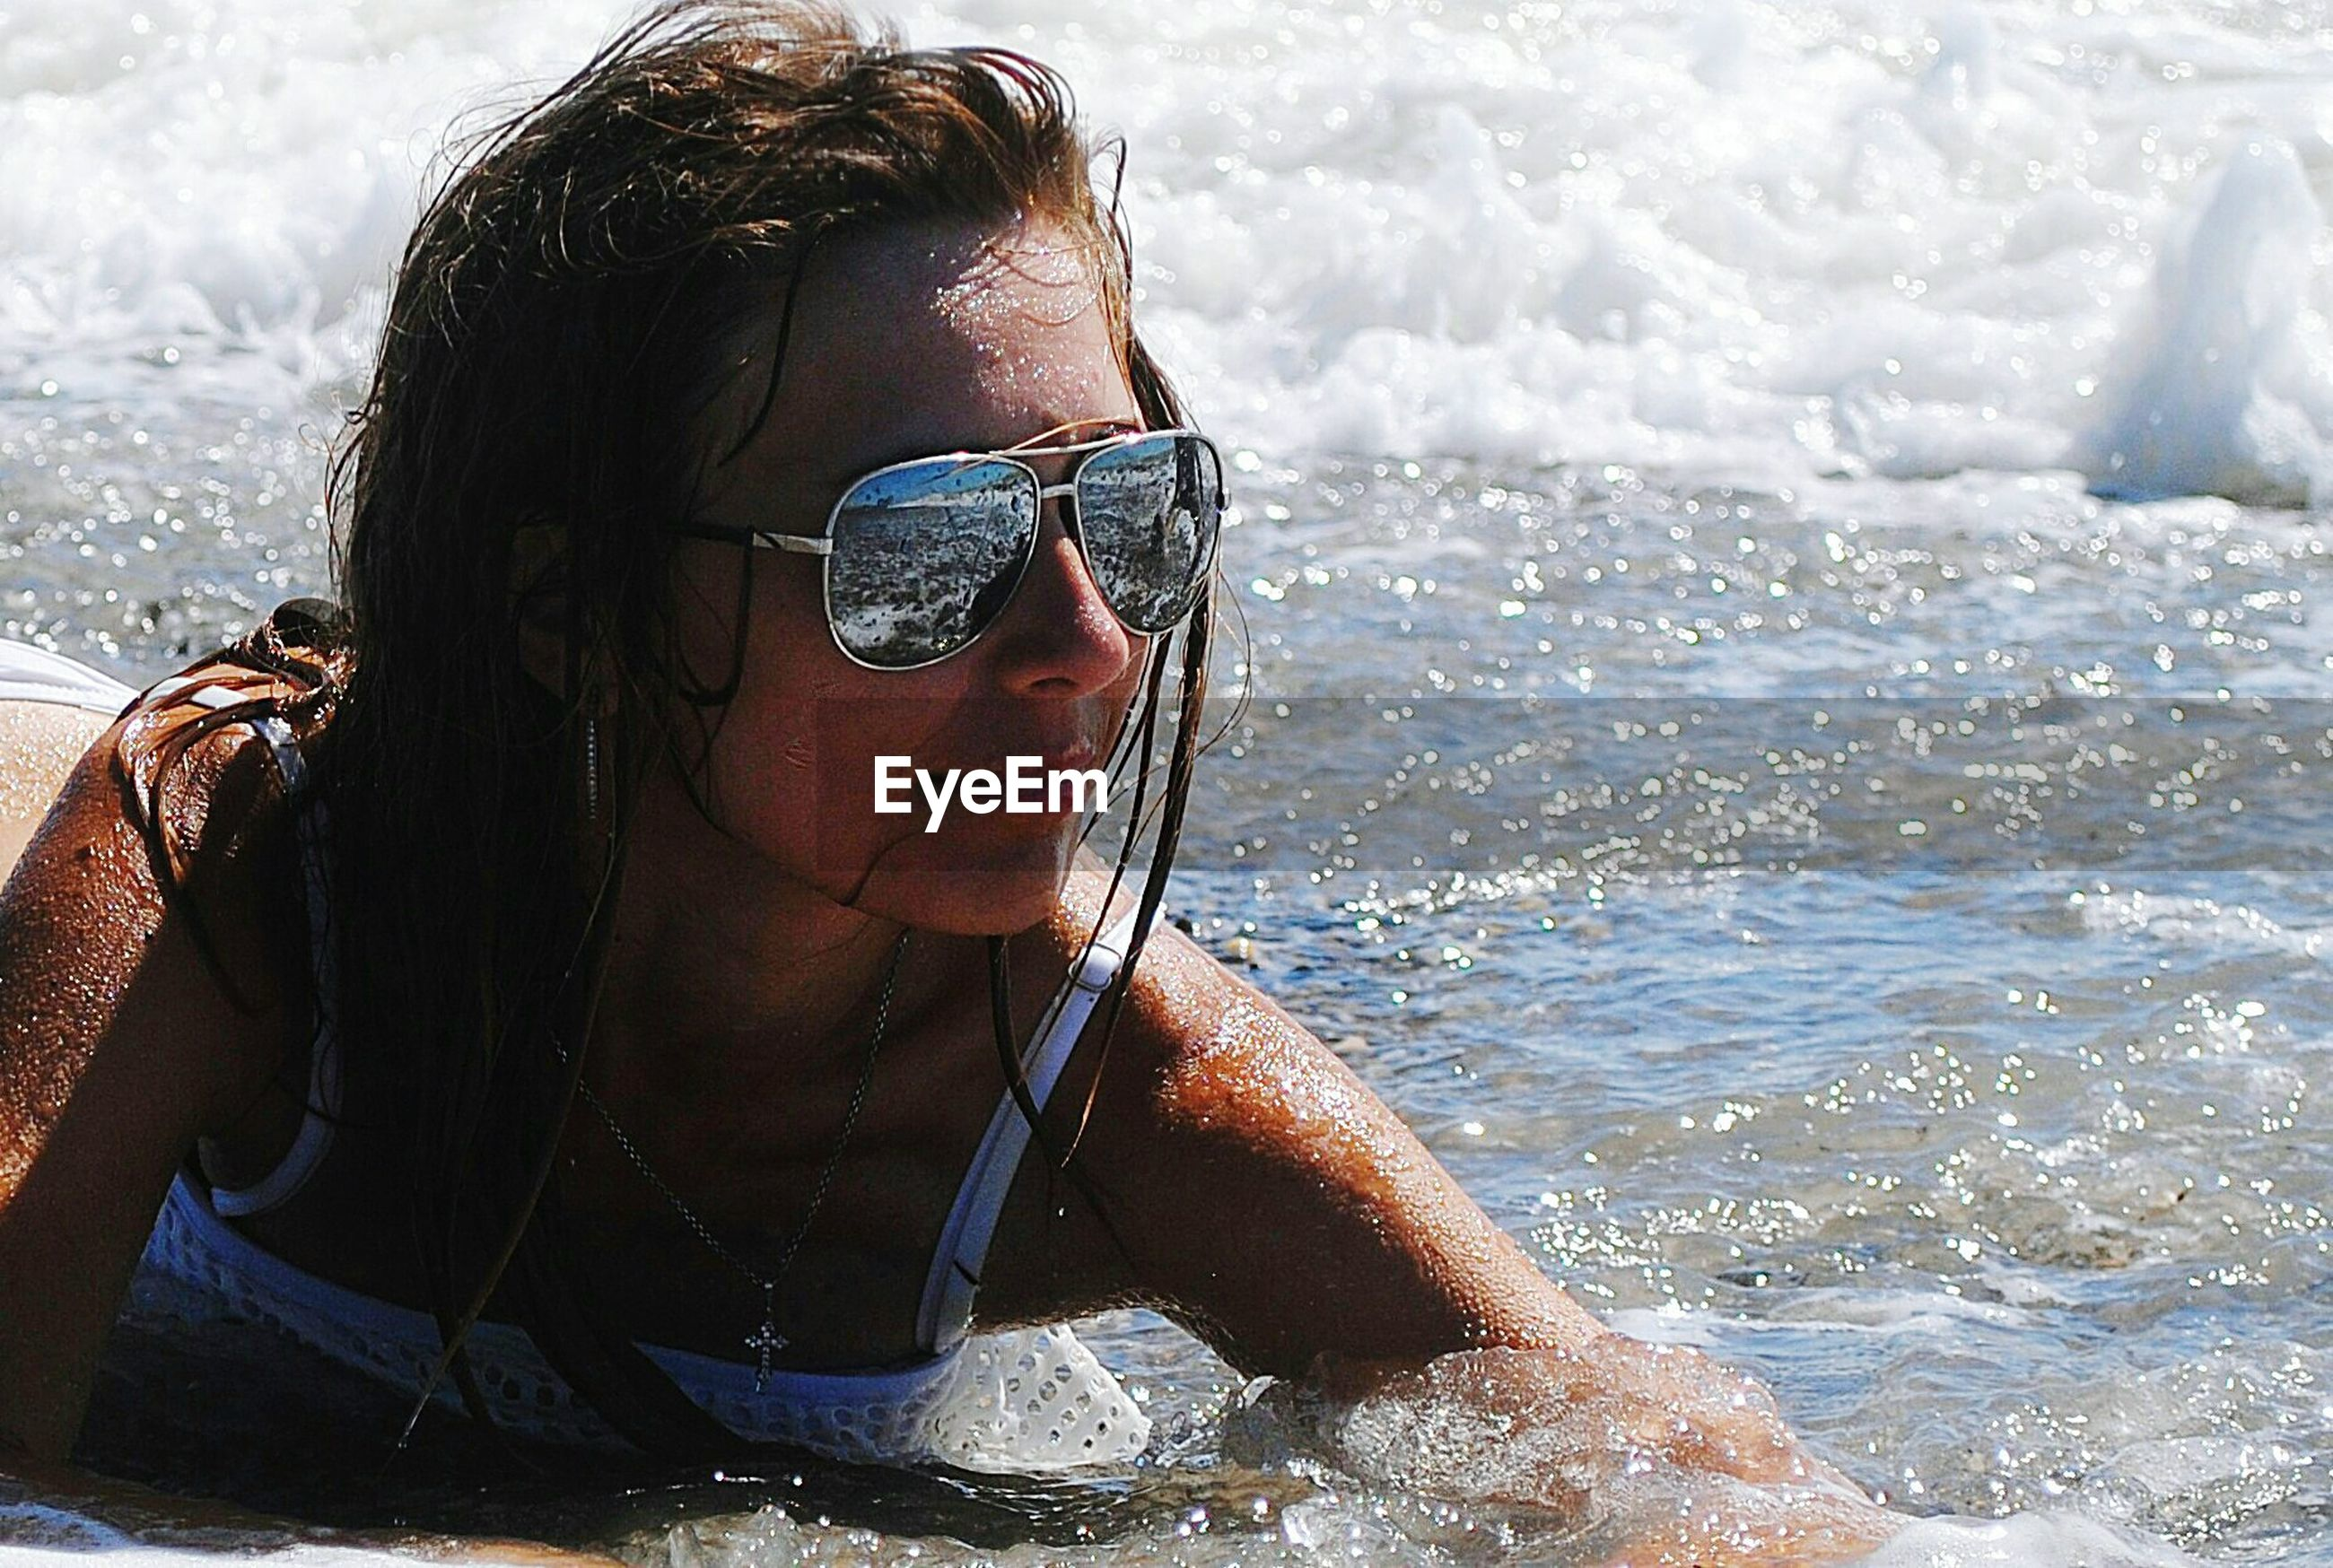 leisure activity, one person, young adult, real people, young women, lifestyles, sunglasses, water, sea, day, headshot, outdoors, front view, focus on foreground, adventure, nature, looking at camera, vacations, portrait, beautiful woman, beauty in nature, close-up, sky, adults only, adult, people